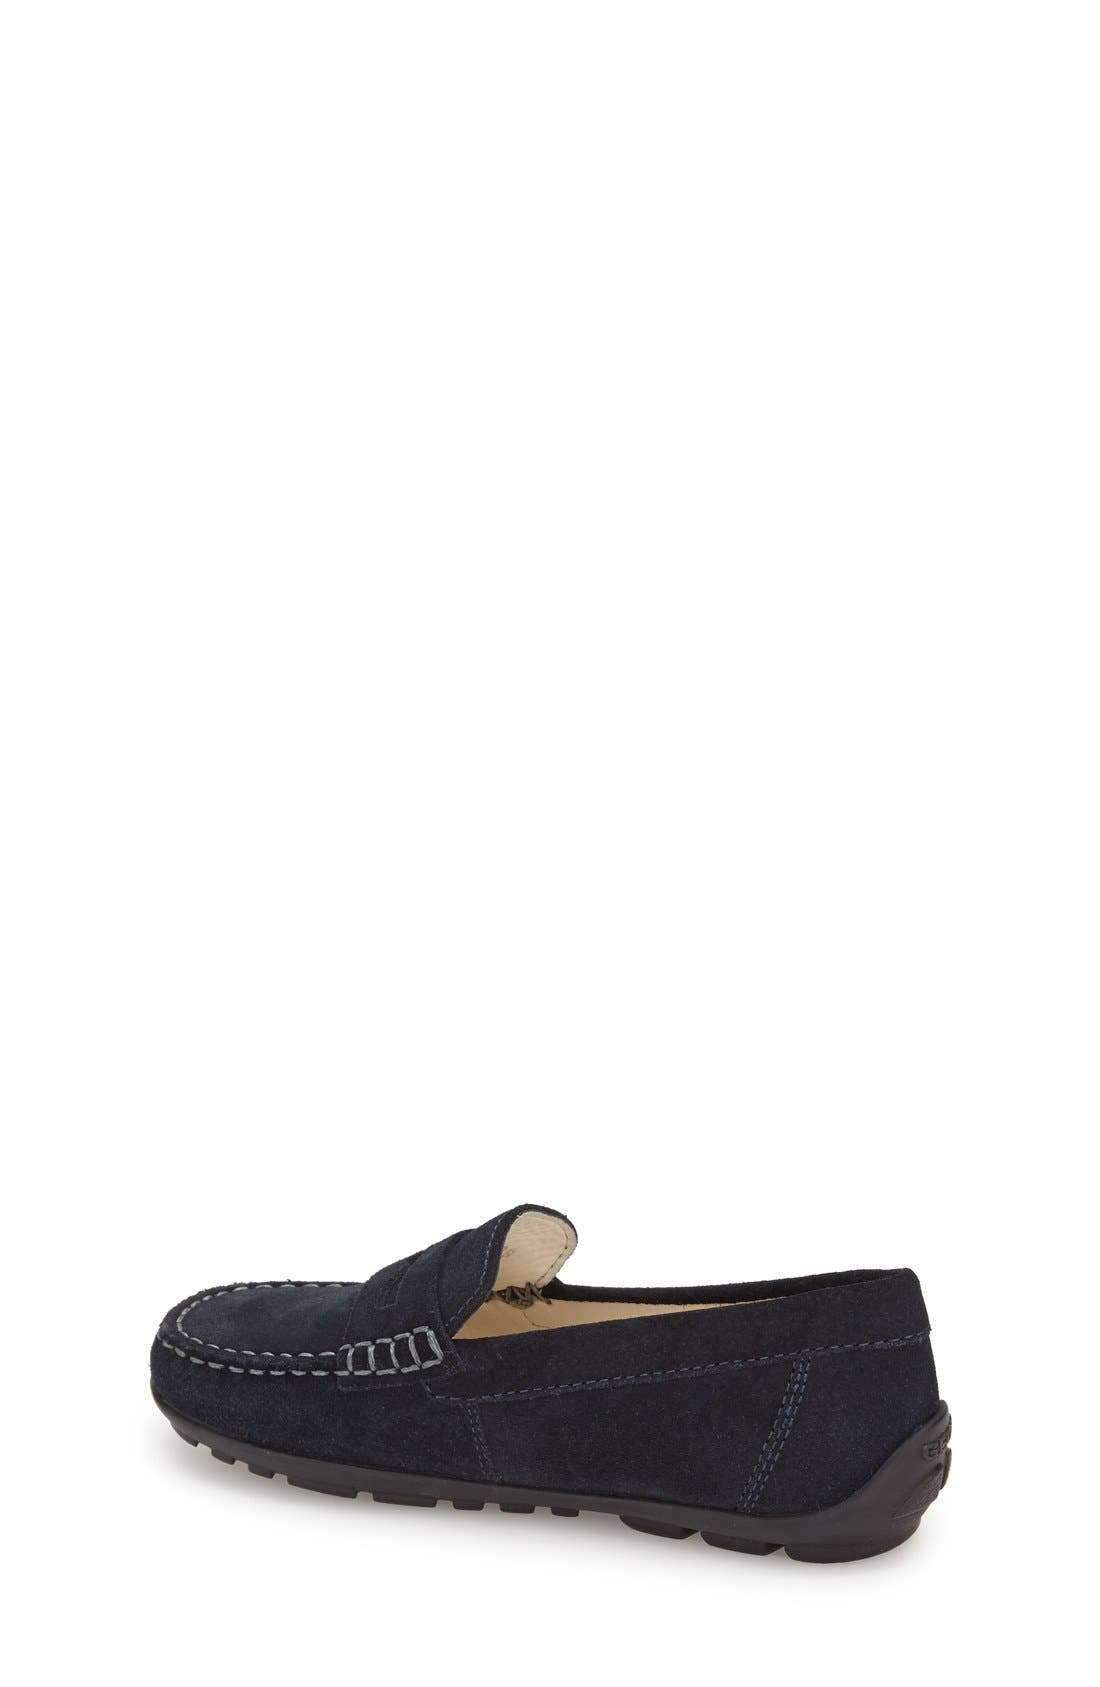 'Fast' Penny Loafer,                             Alternate thumbnail 2, color,                             Navy